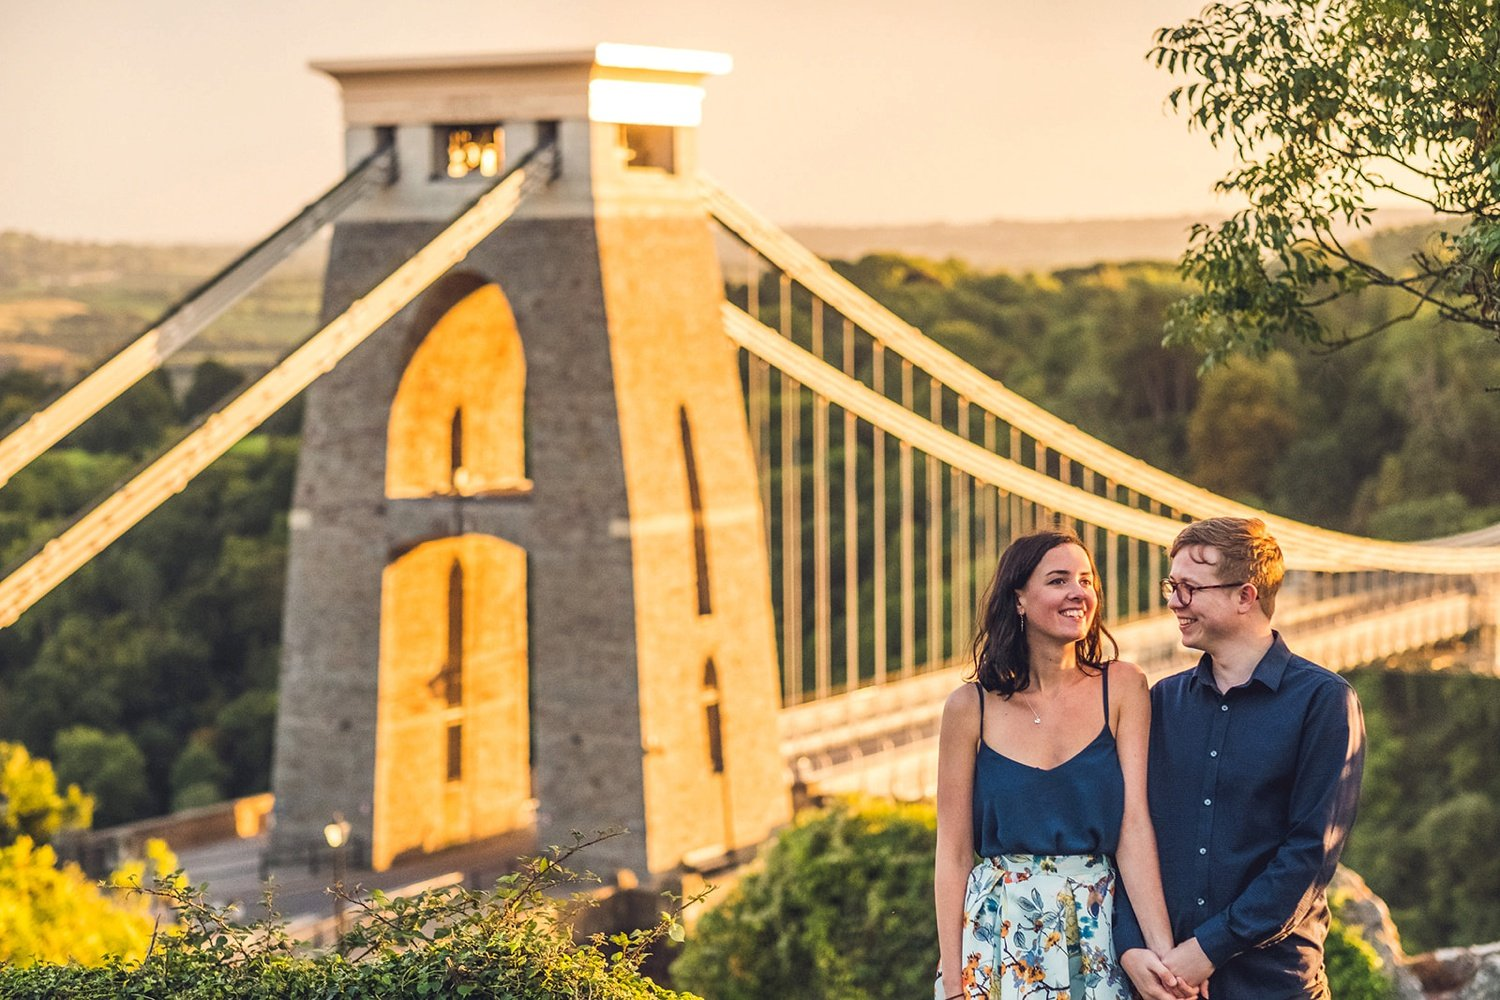 Couple laughing bristol suspension bridge sunset